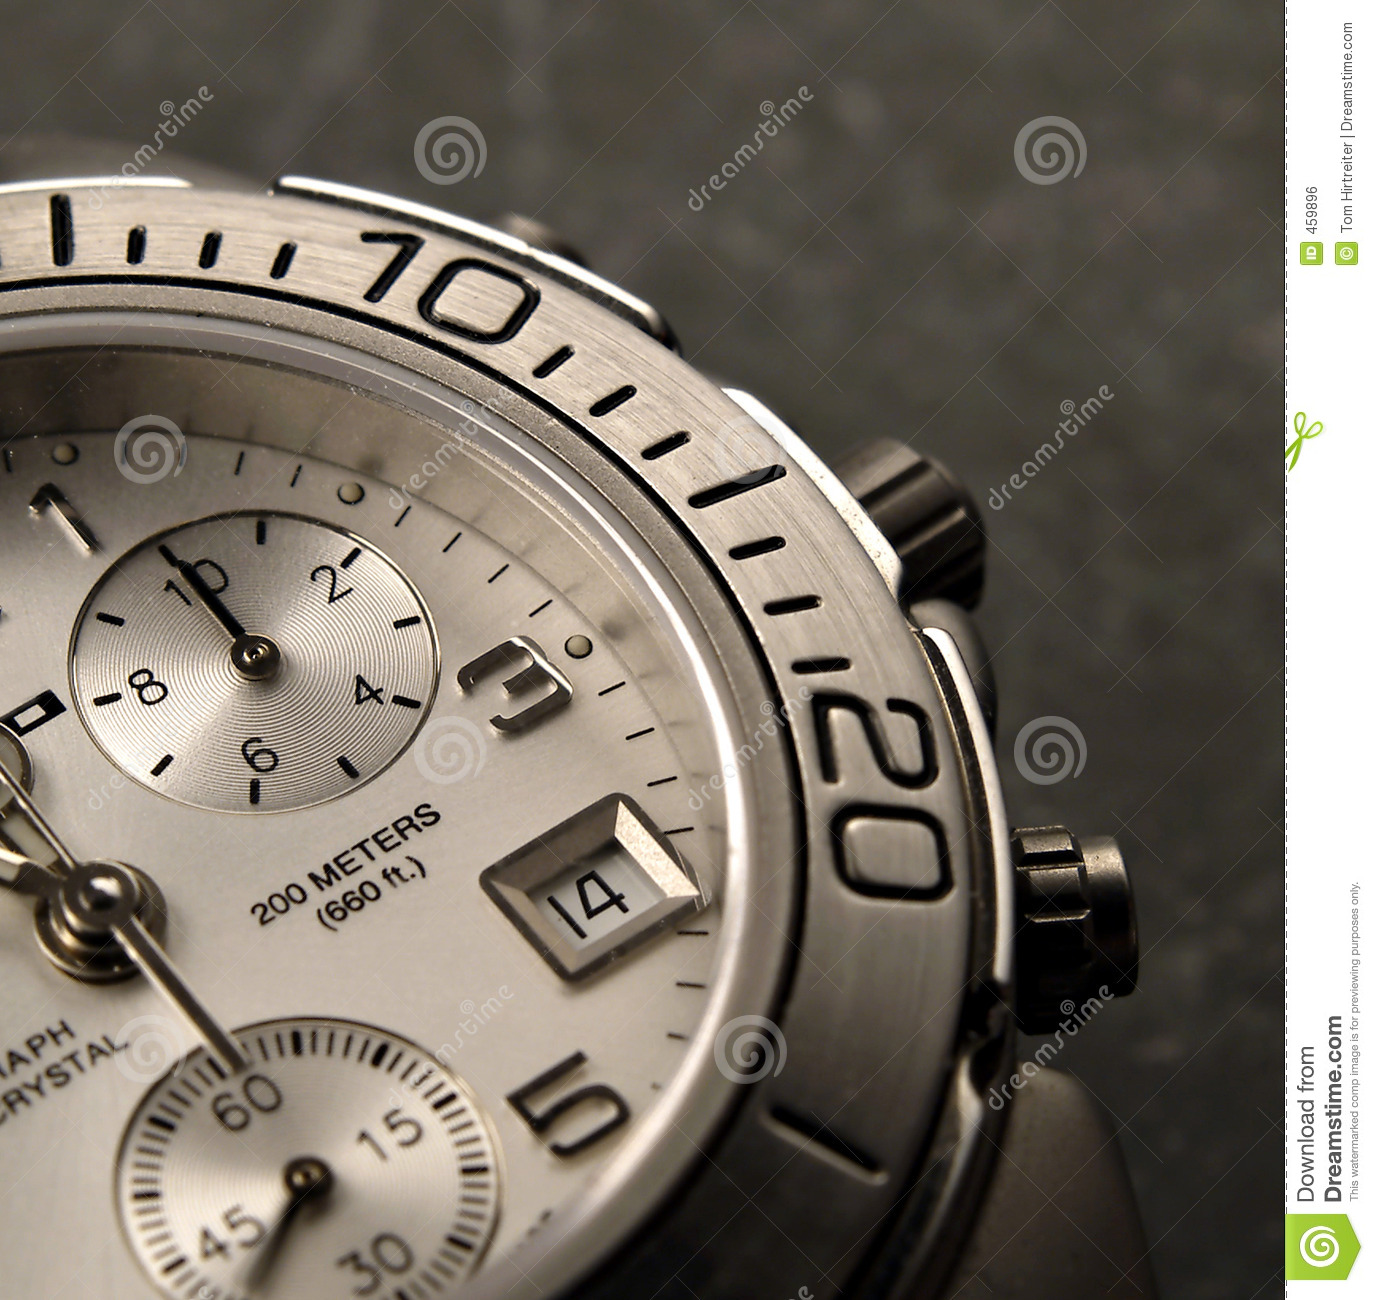 Download Watch stock photo. Image of silver, watch, timer, hands - 459896